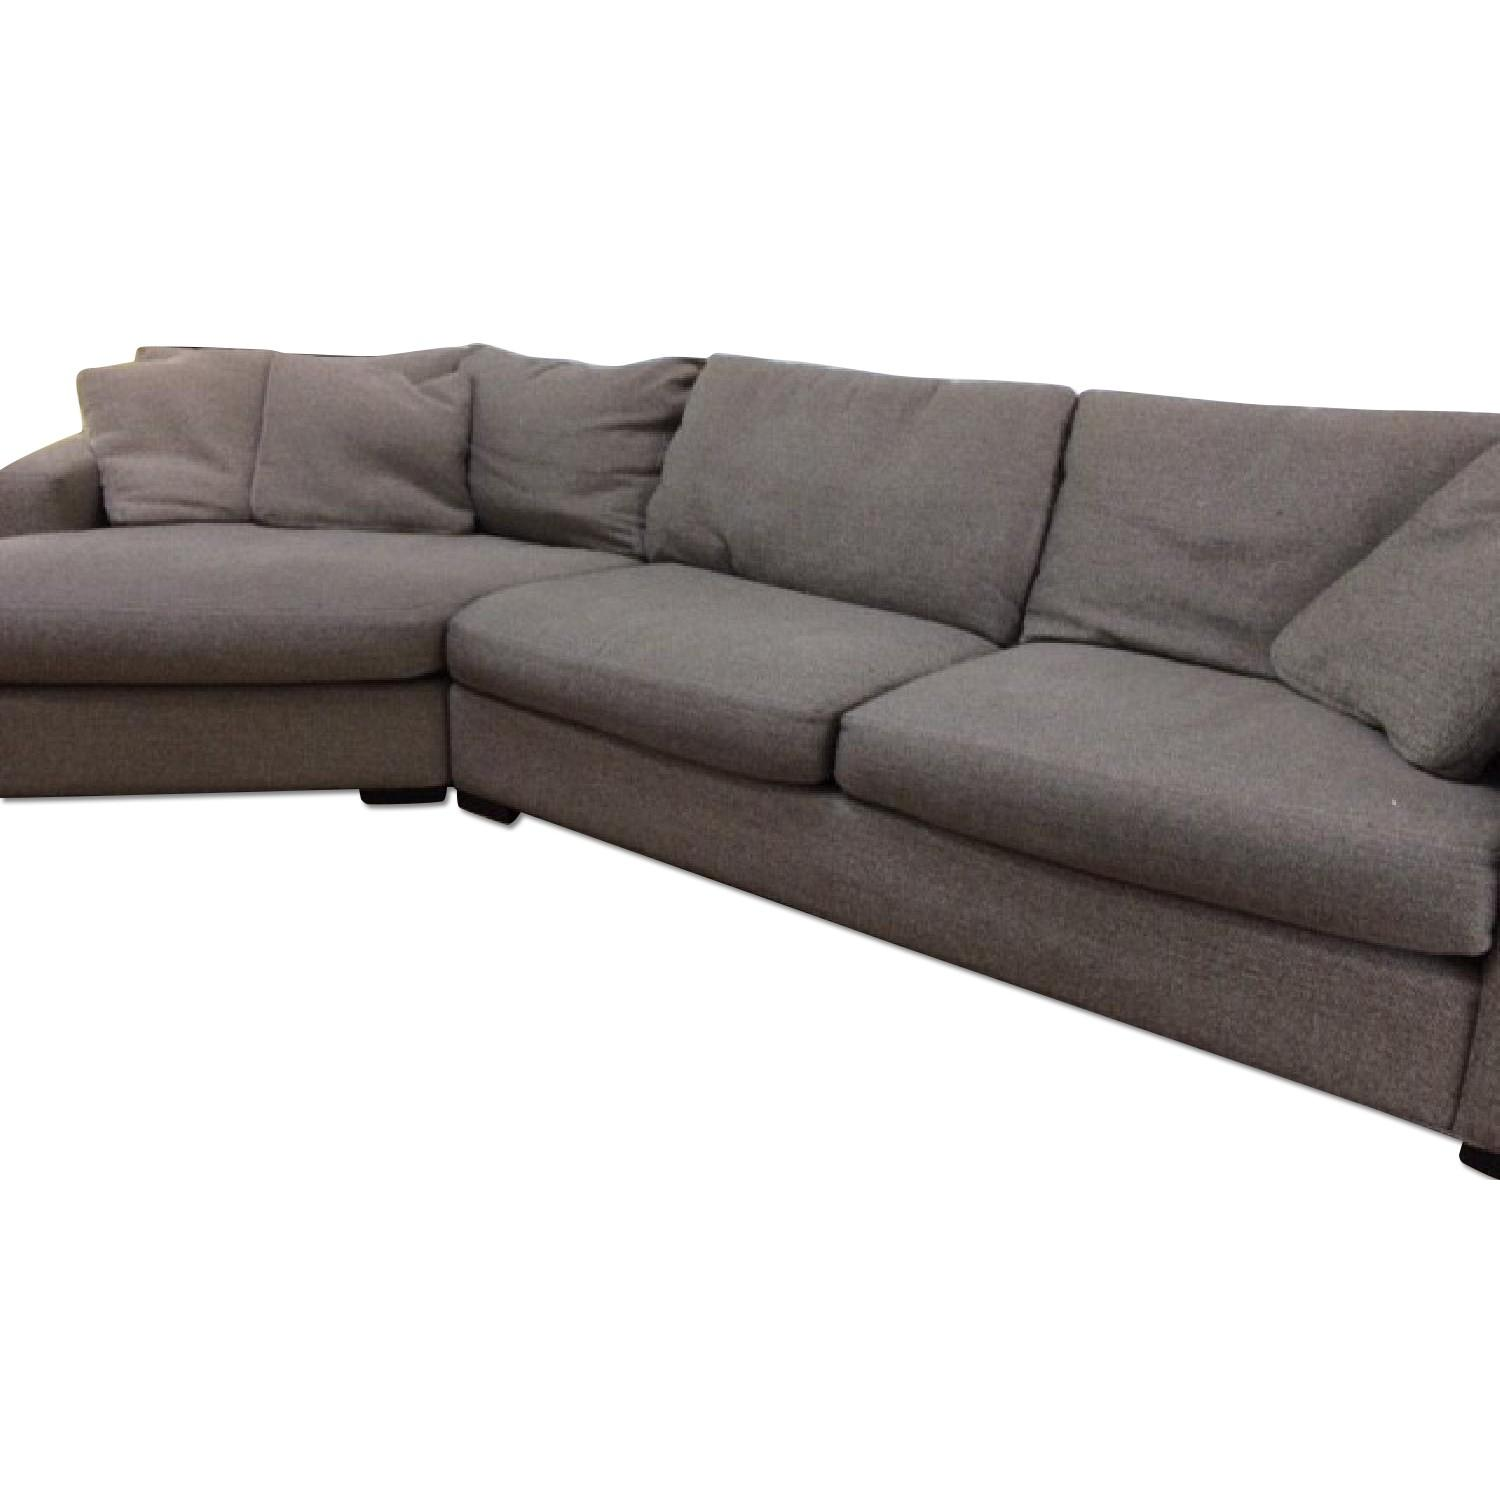 Cb2 Apartment Sofa hmmi